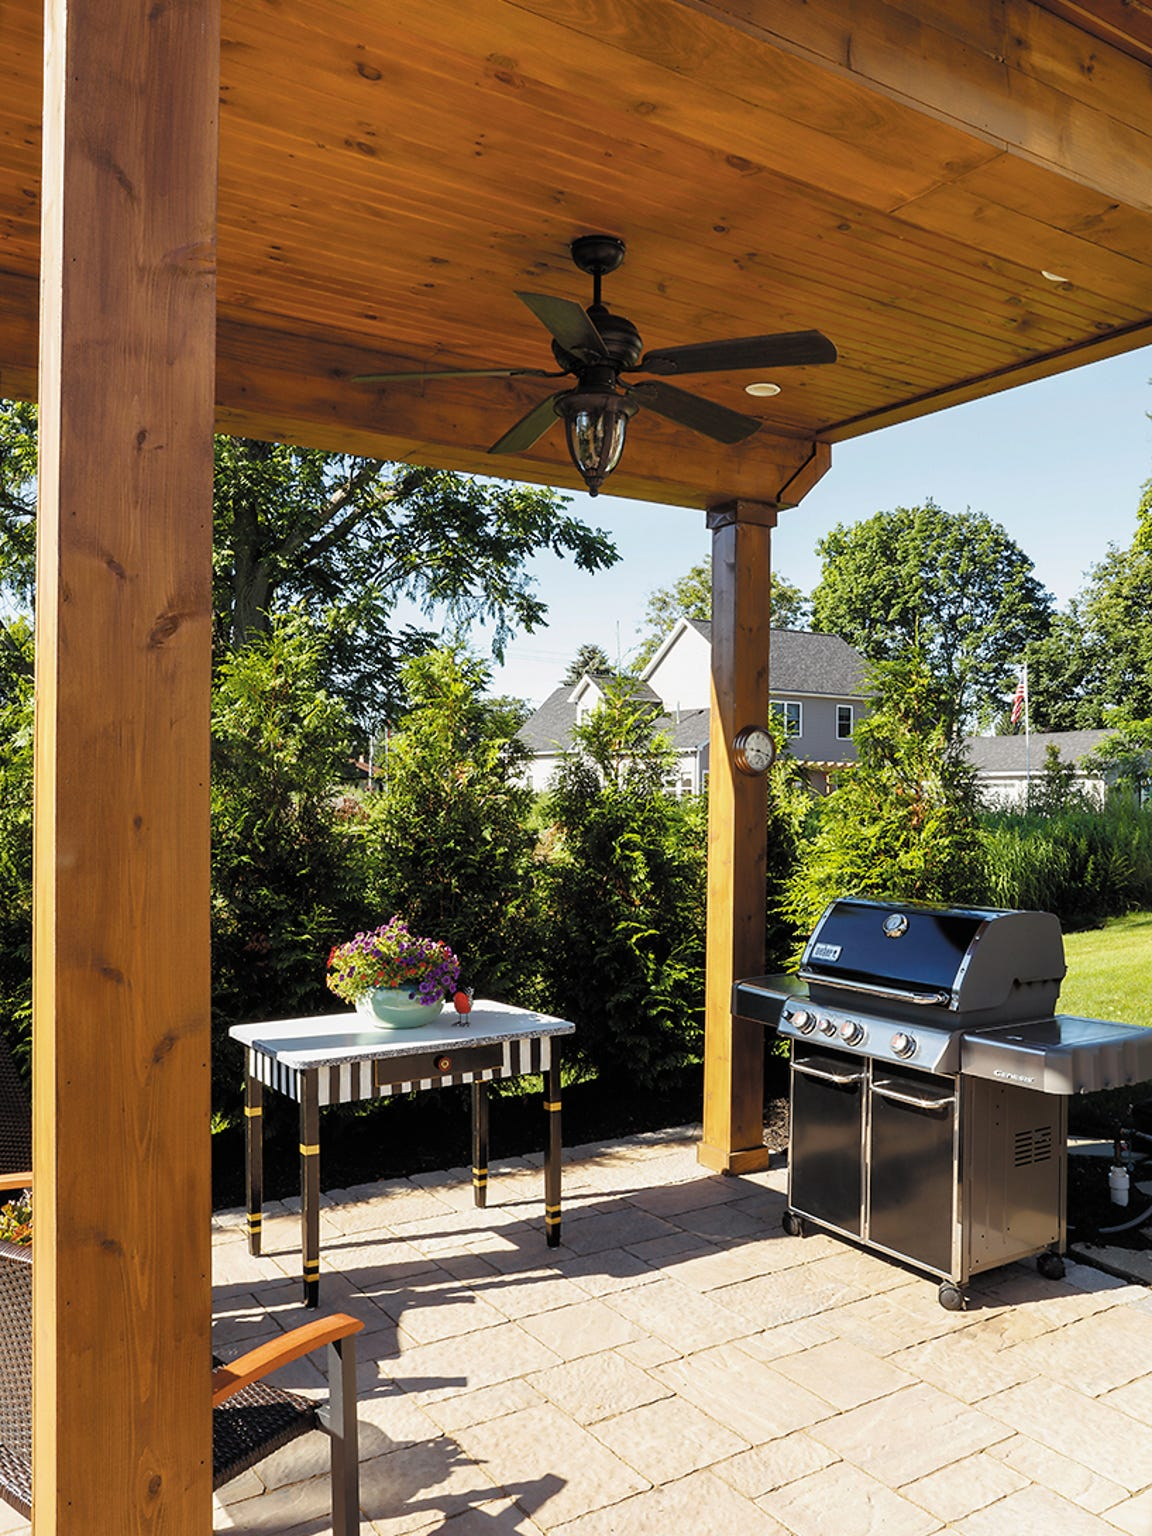 The Muratore's grilling area.